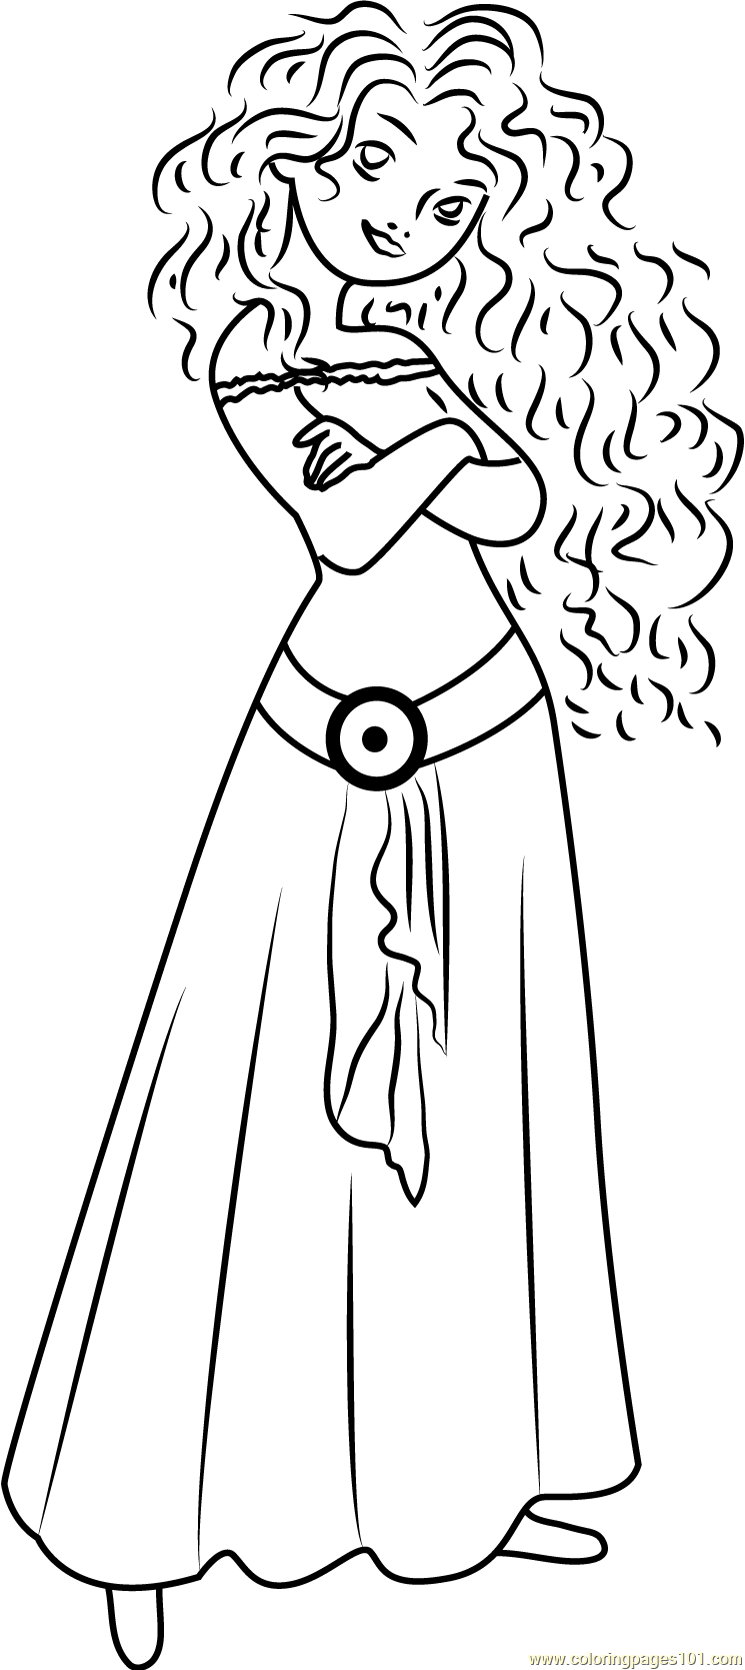 Cute Merida Coloring Page